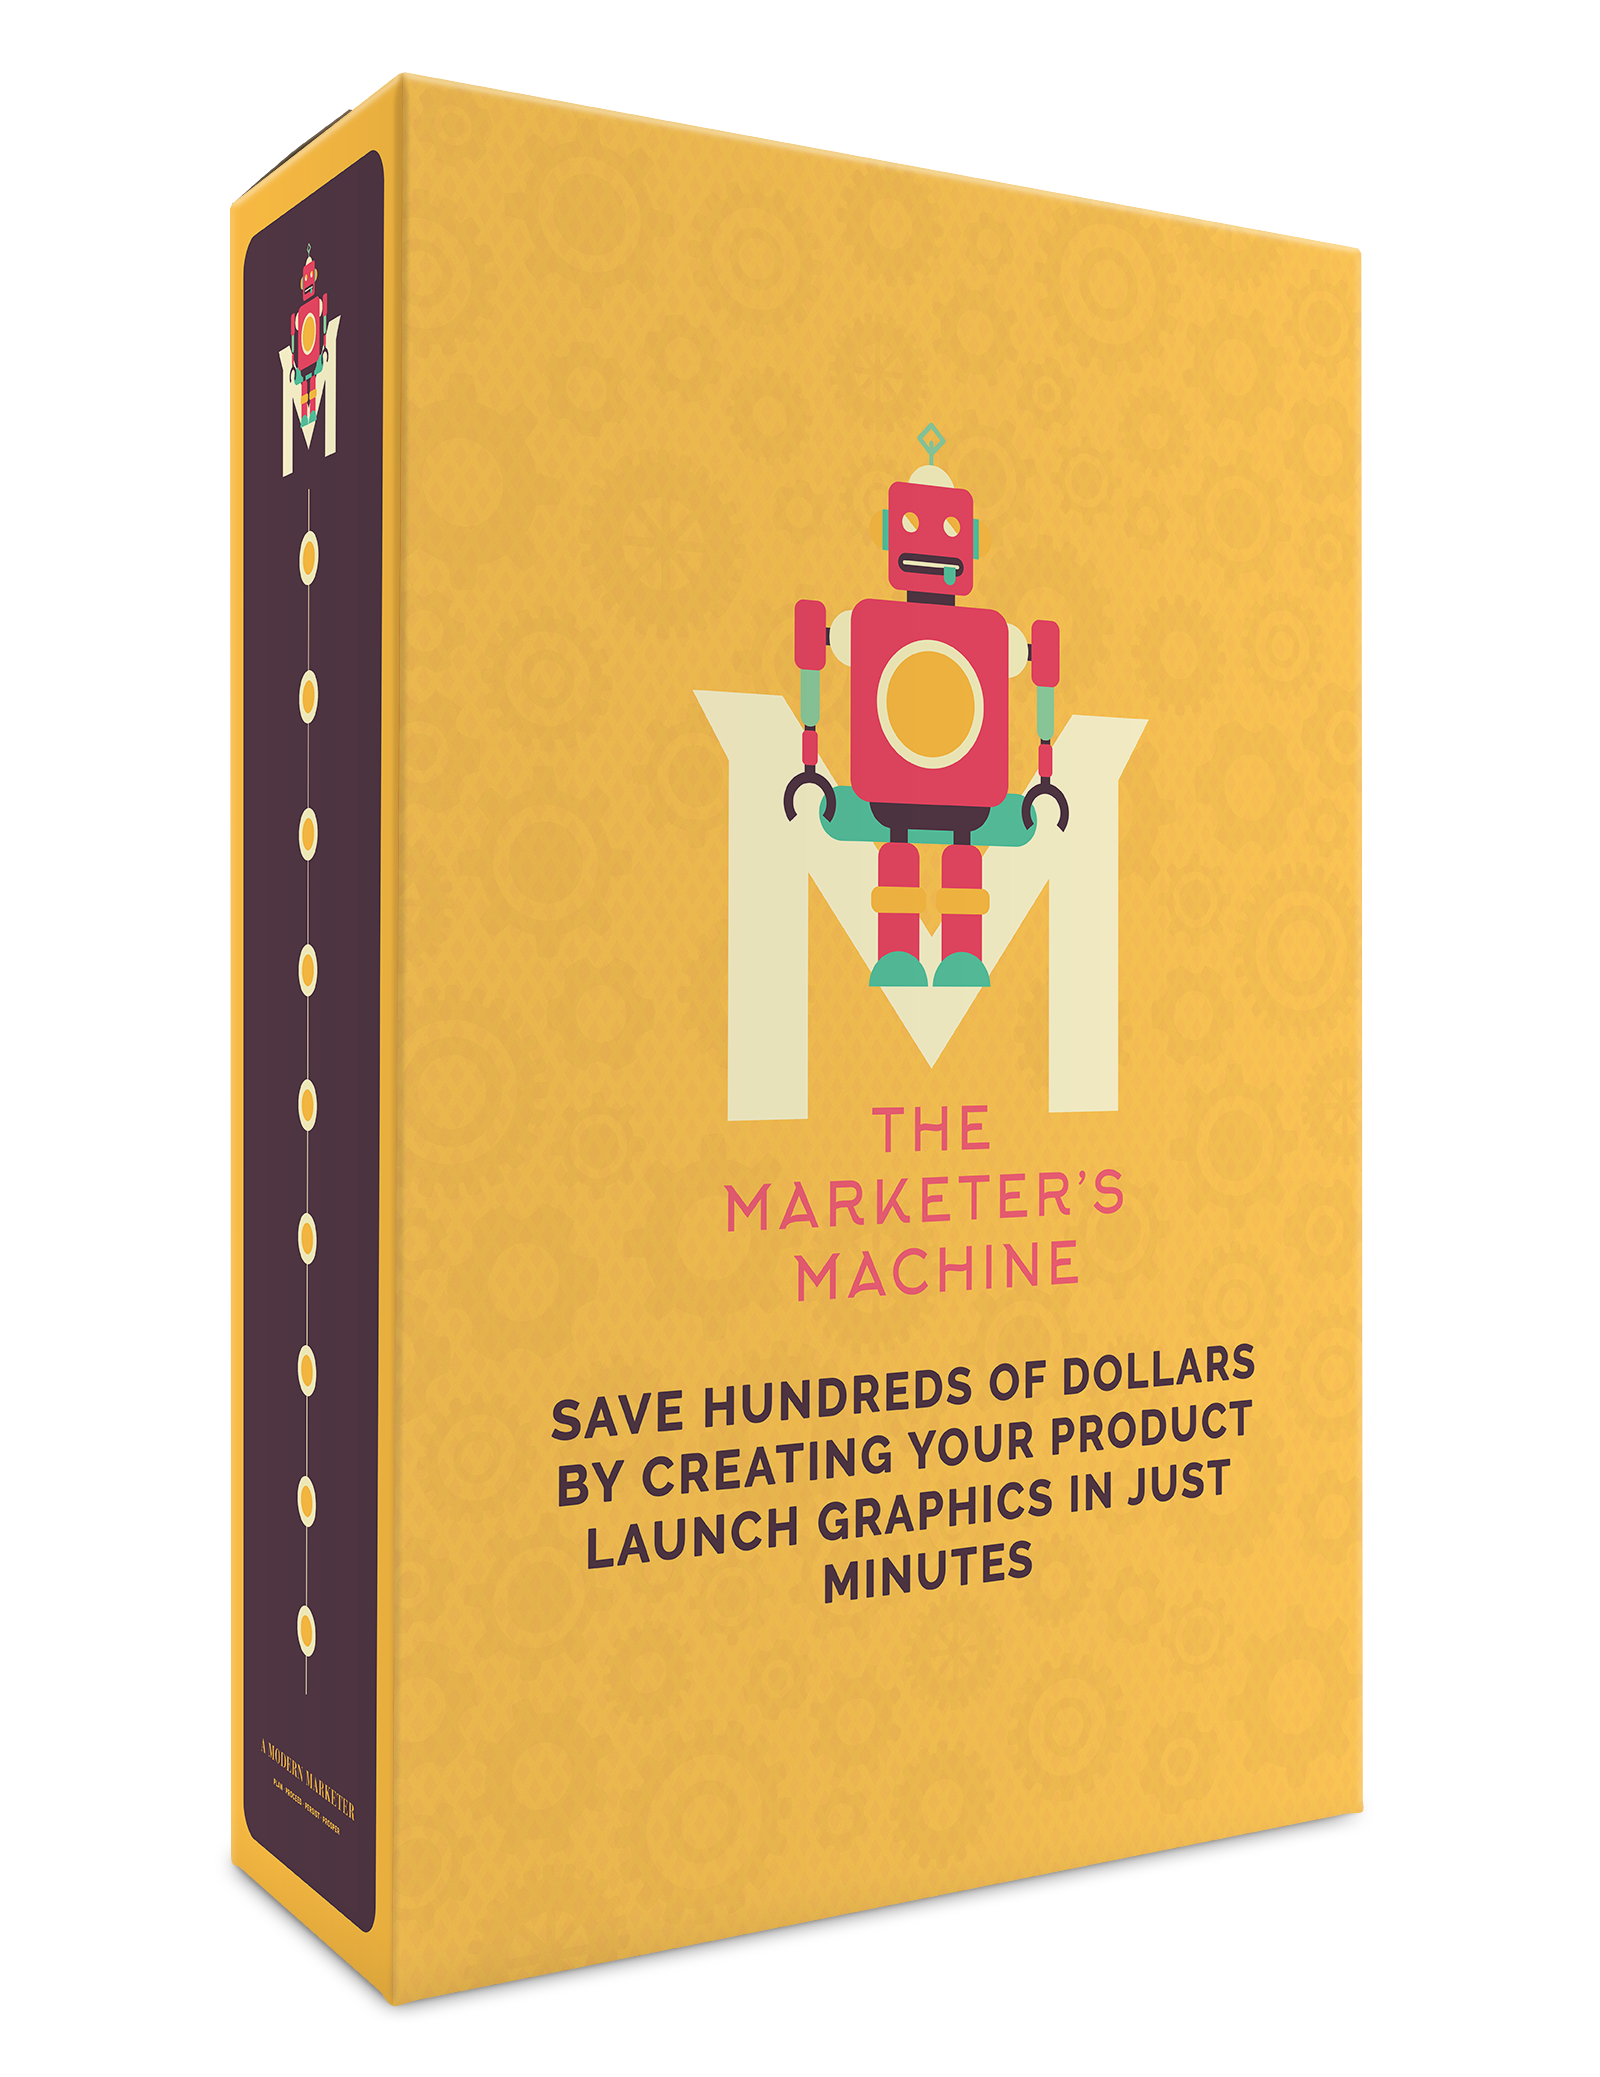 The Marketer's Machine